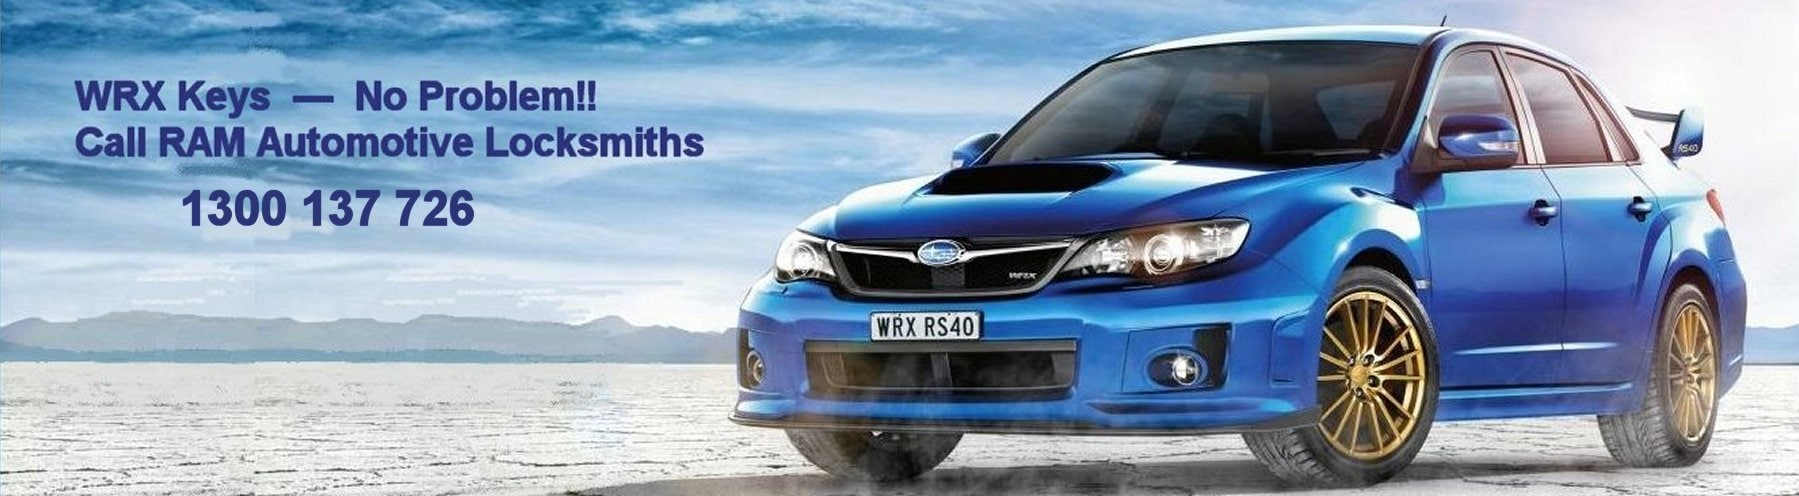 wrx-plus-text-1800x496-new